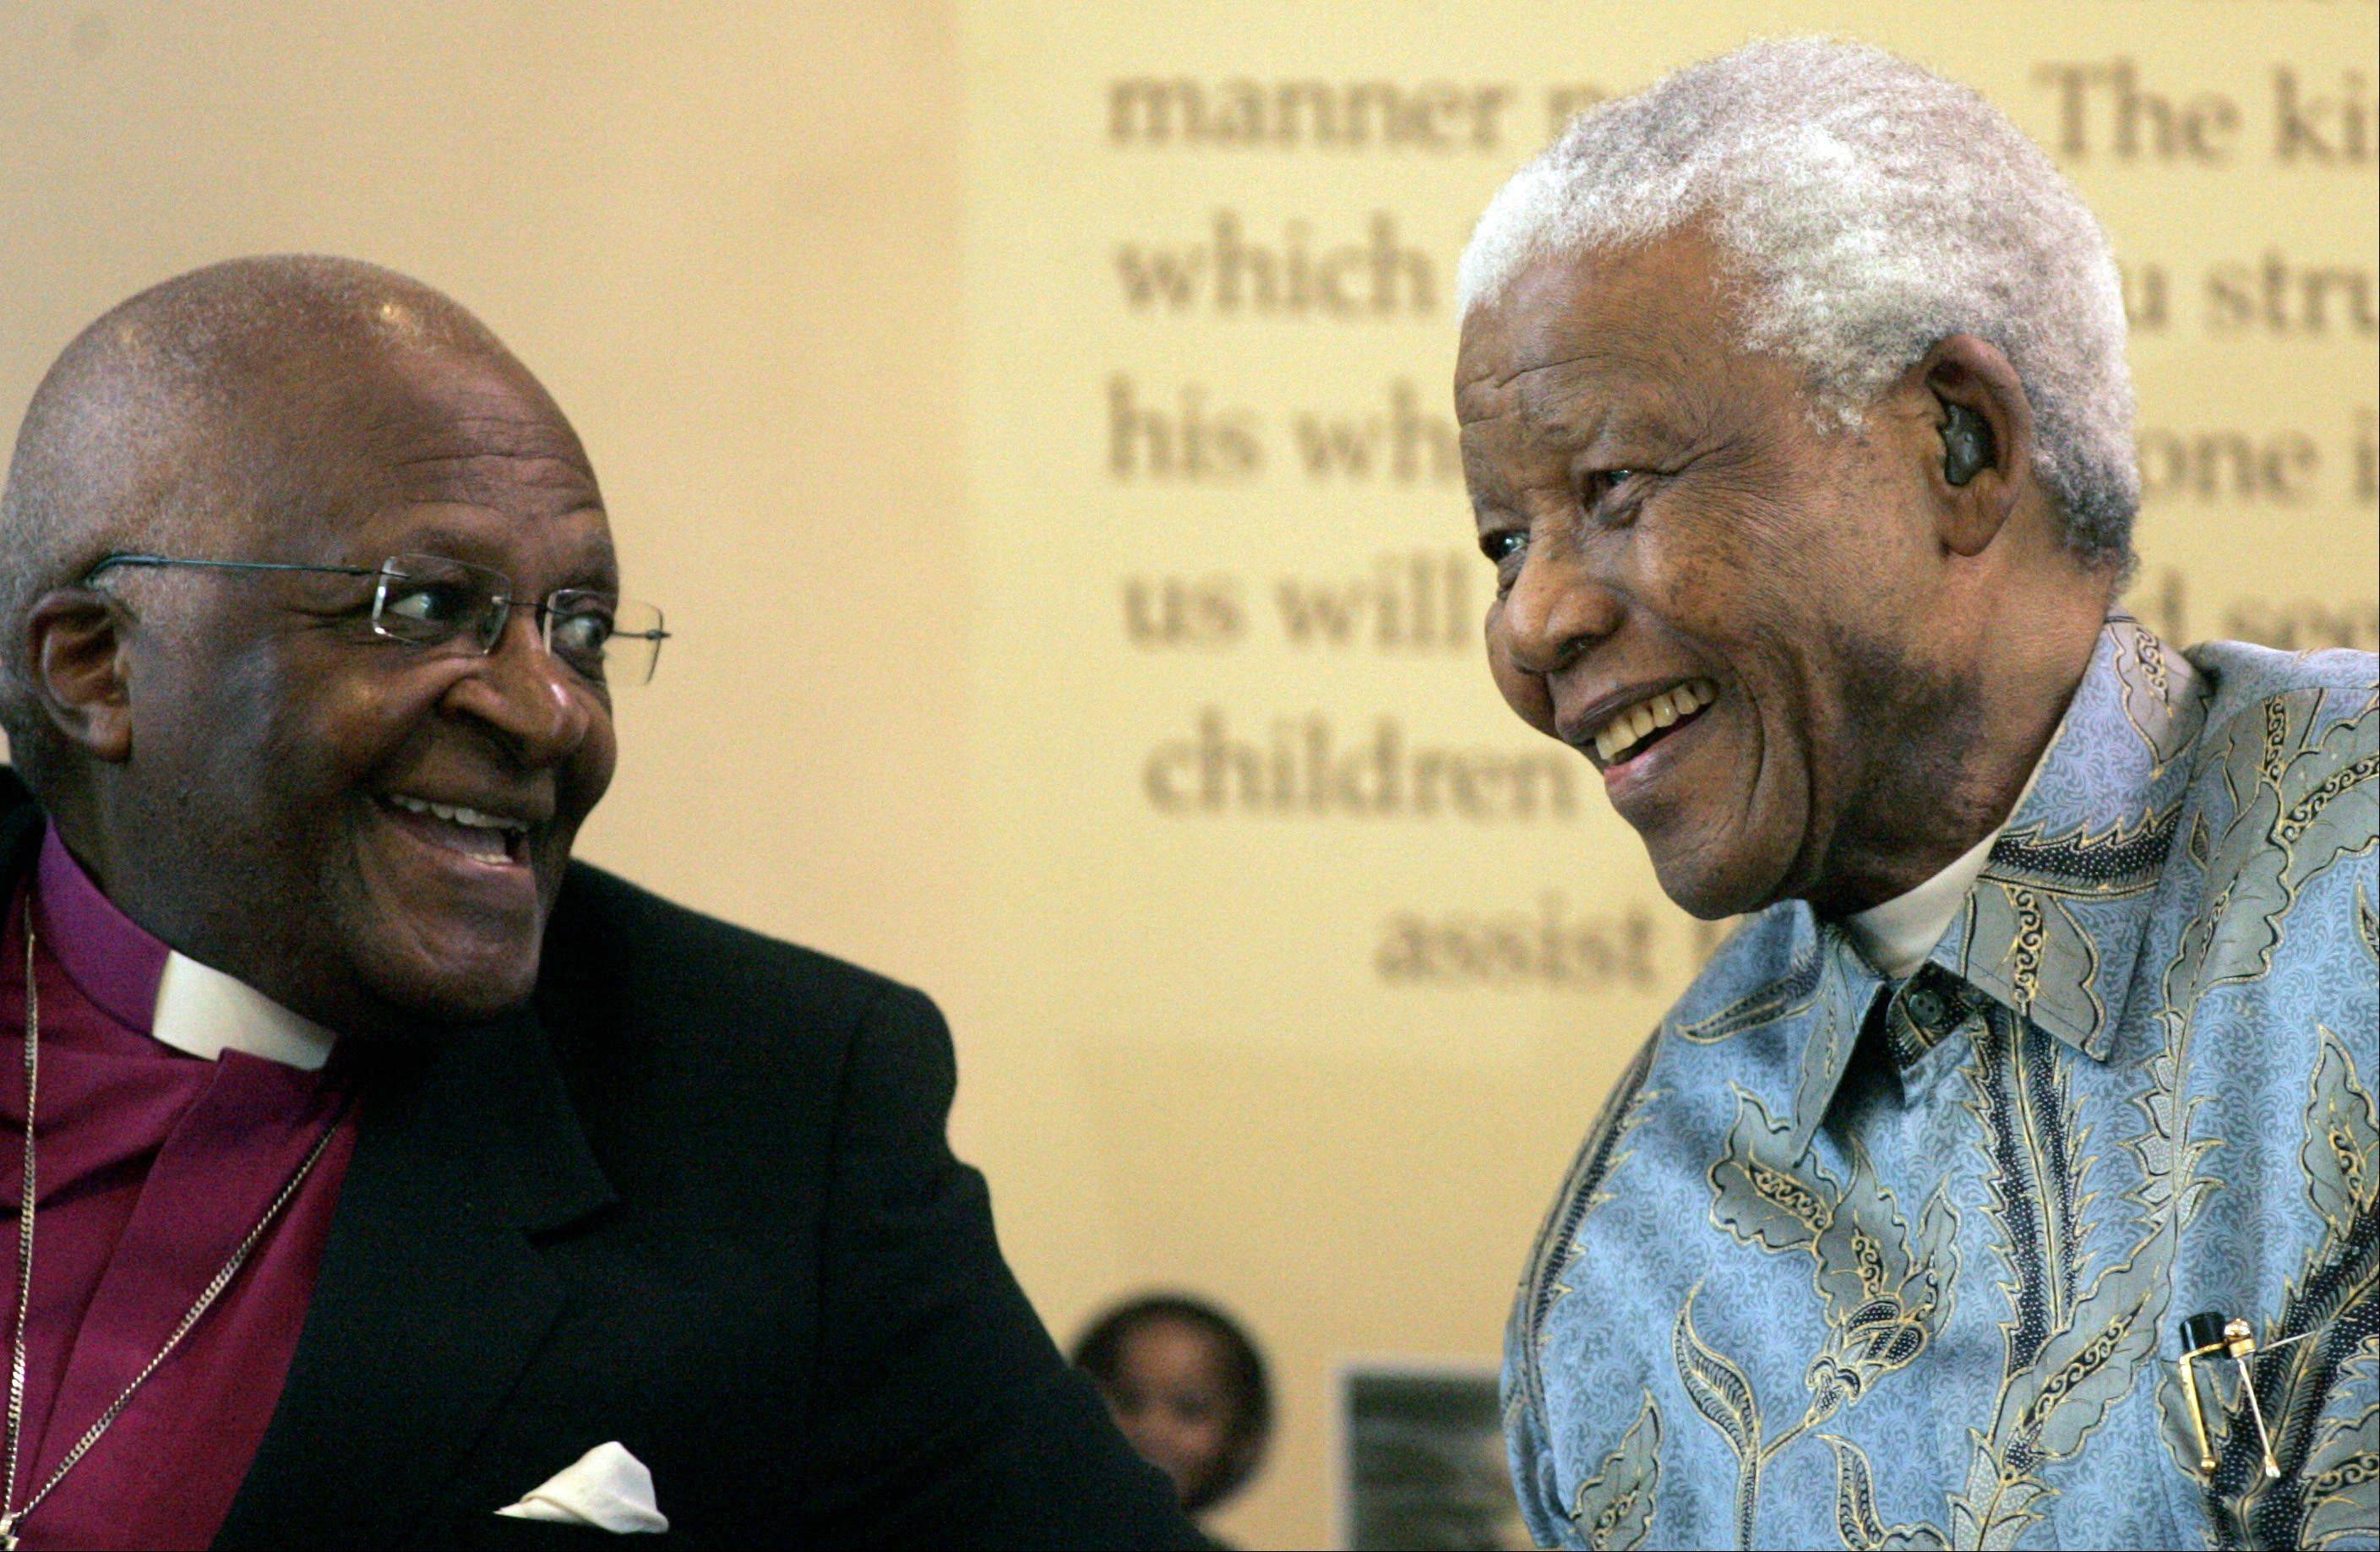 Former South African President Nelson Mandela, right, reacts with Archbishop Desmond Tutu, during the launch of a Walter and Albertina Sisulu exhibition, called, 'Parenting a Nation,' at the Nelson Mandela Foundation in Johannesburg, South Africa, March 12, 2008.